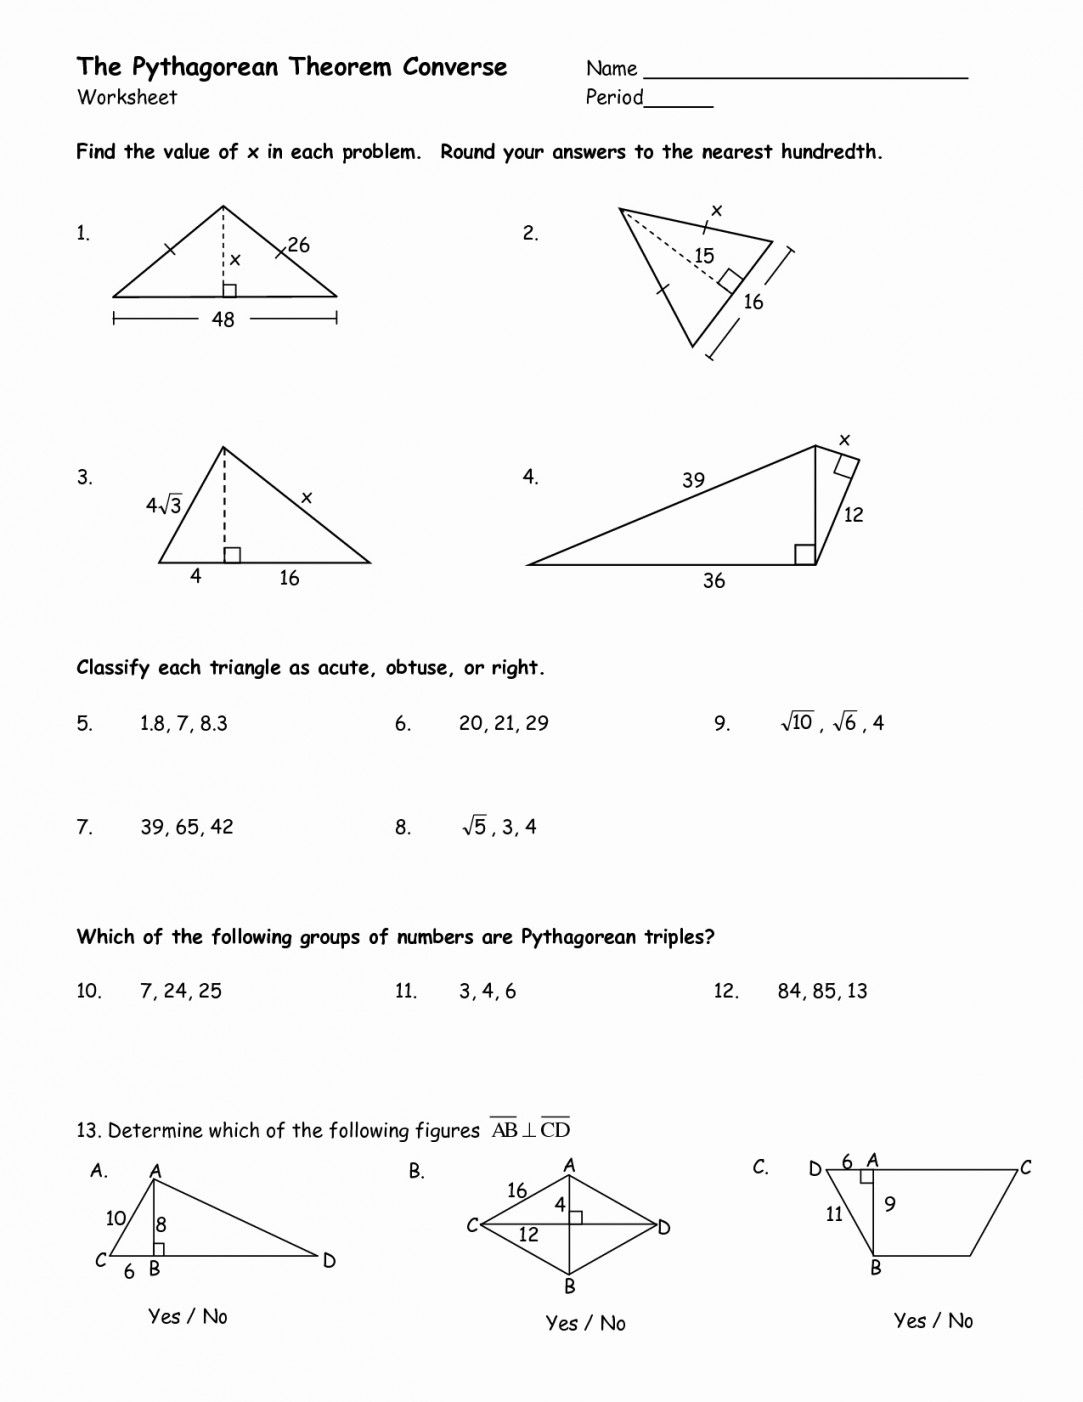 Converse Of The Pythagorean Theorem Worksheet | Lostranquillos - Free Printable Pythagorean Theorem Worksheets